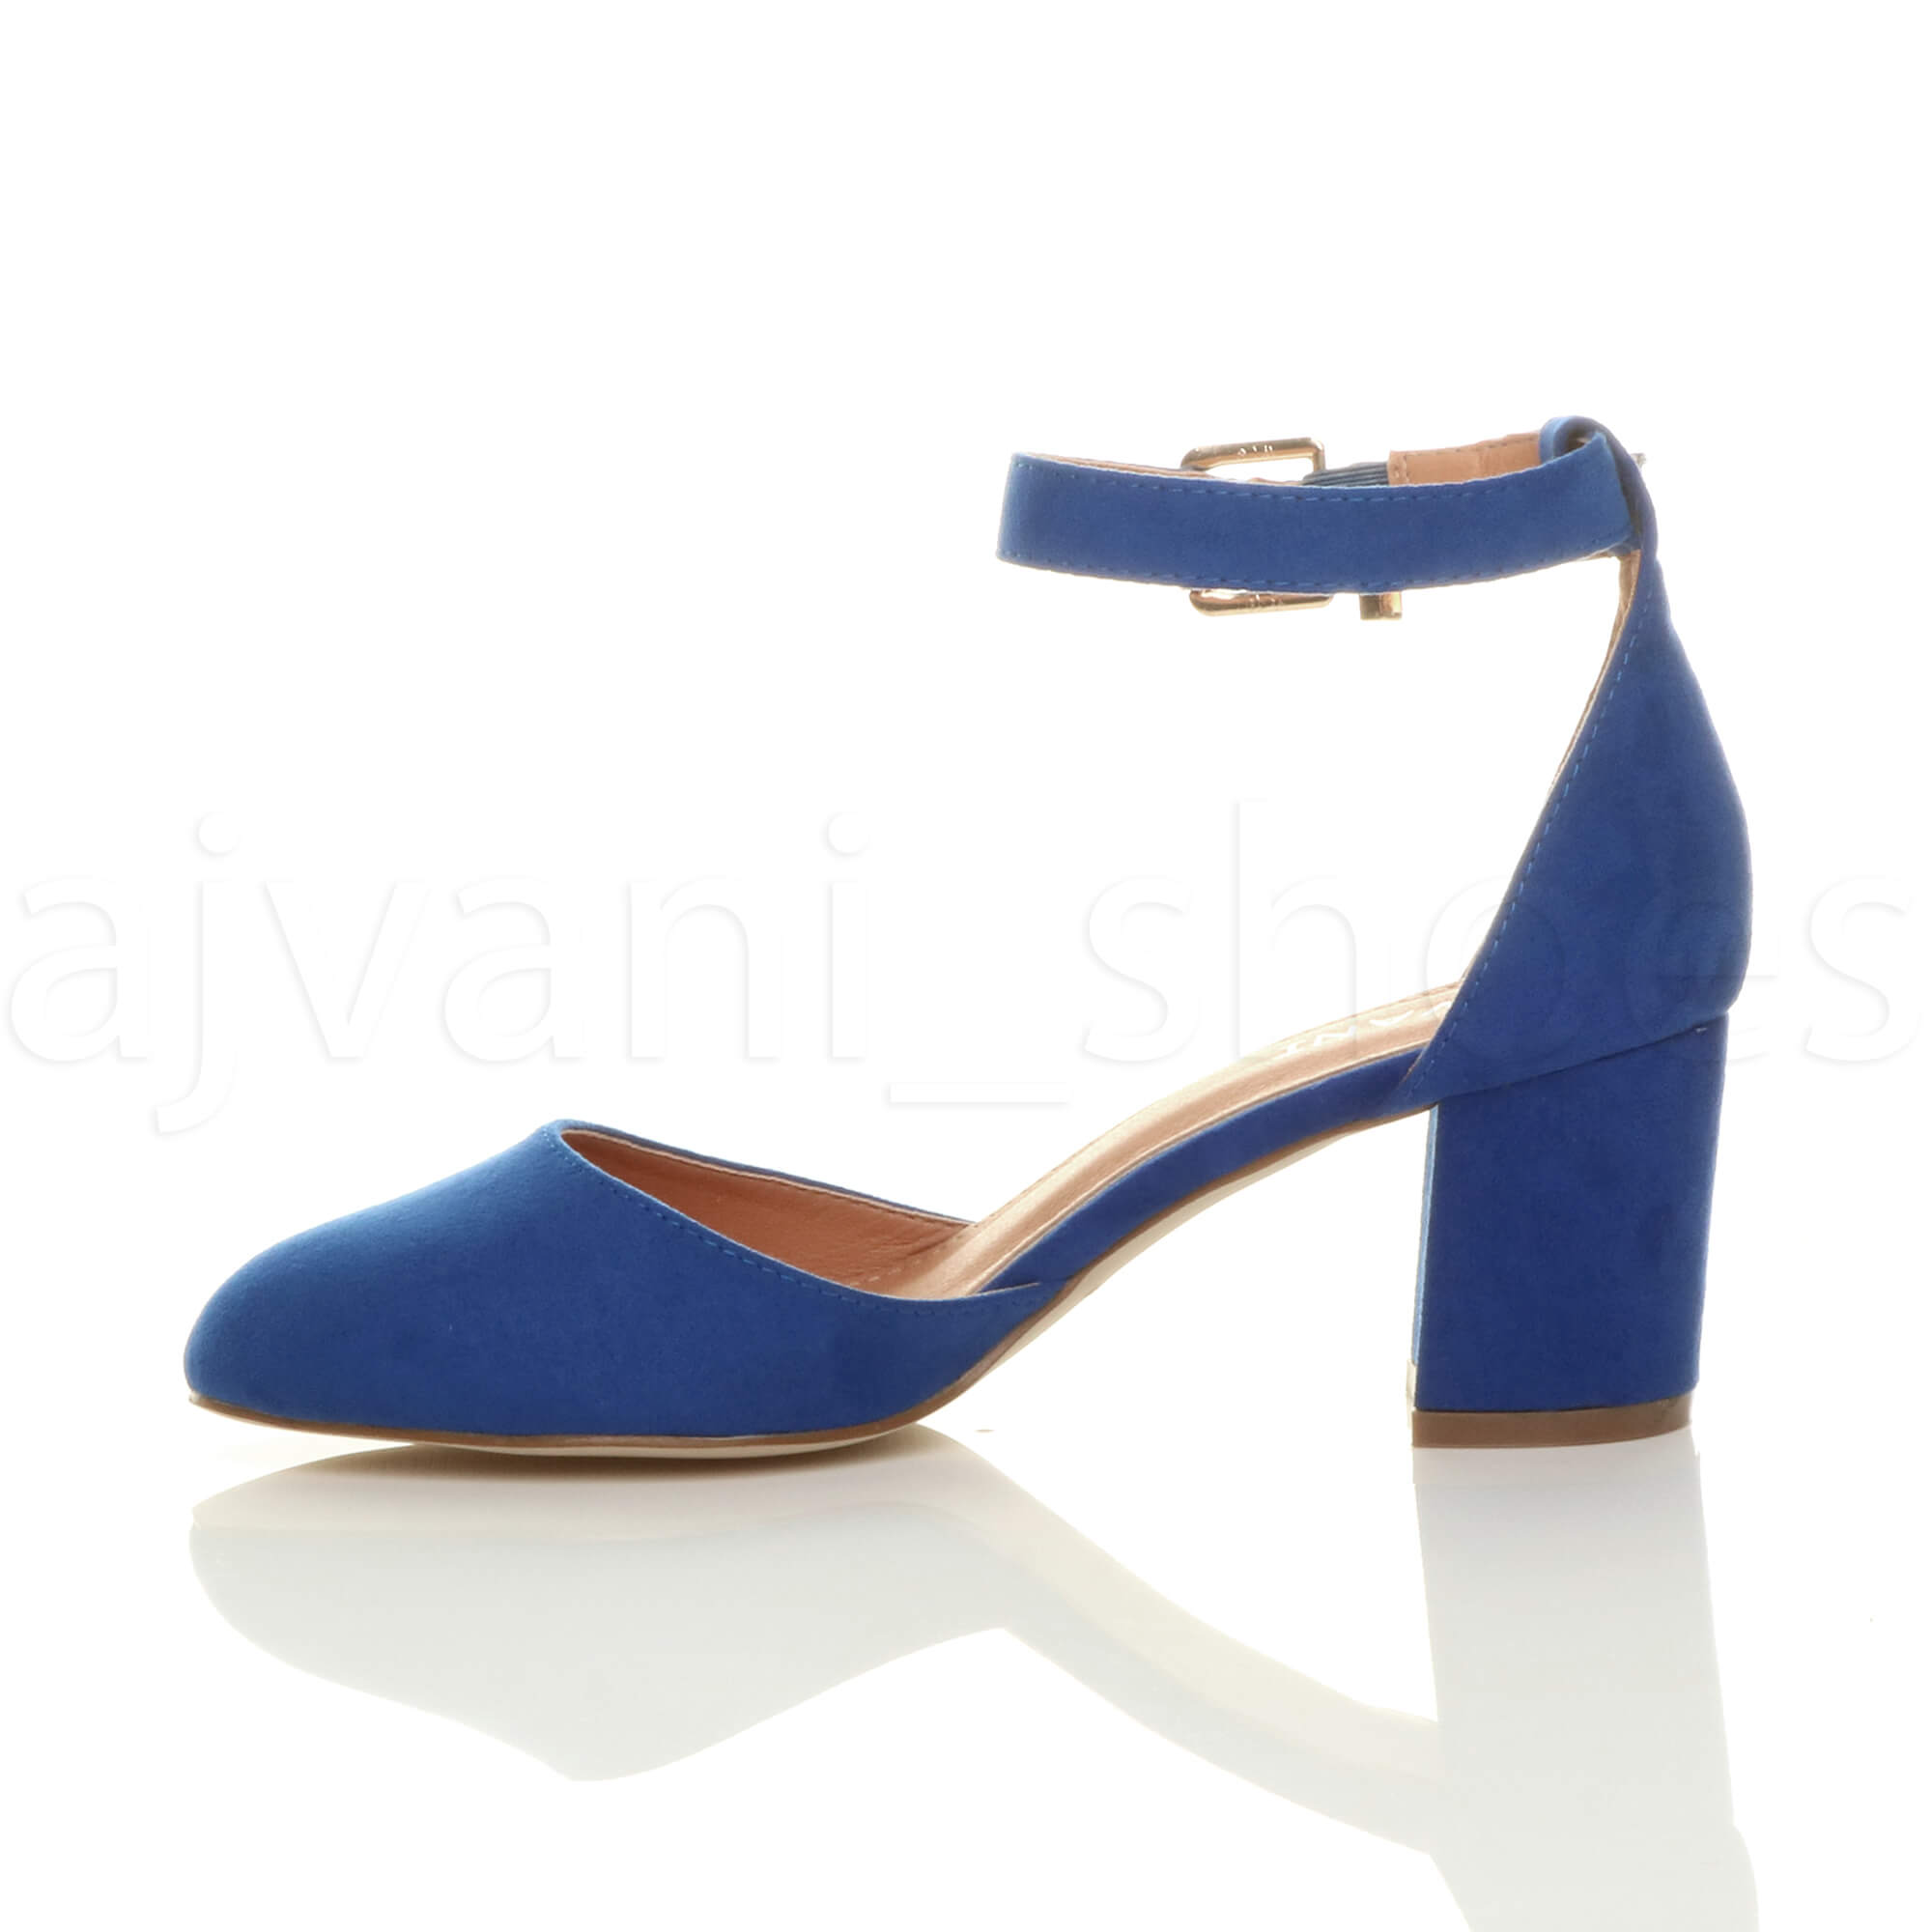 WOMENS-LADIES-LOW-MID-BLOCK-HEEL-ANKLE-STRAP-MARY-JANE-COURT-SHOES-SANDALS-SIZE thumbnail 28